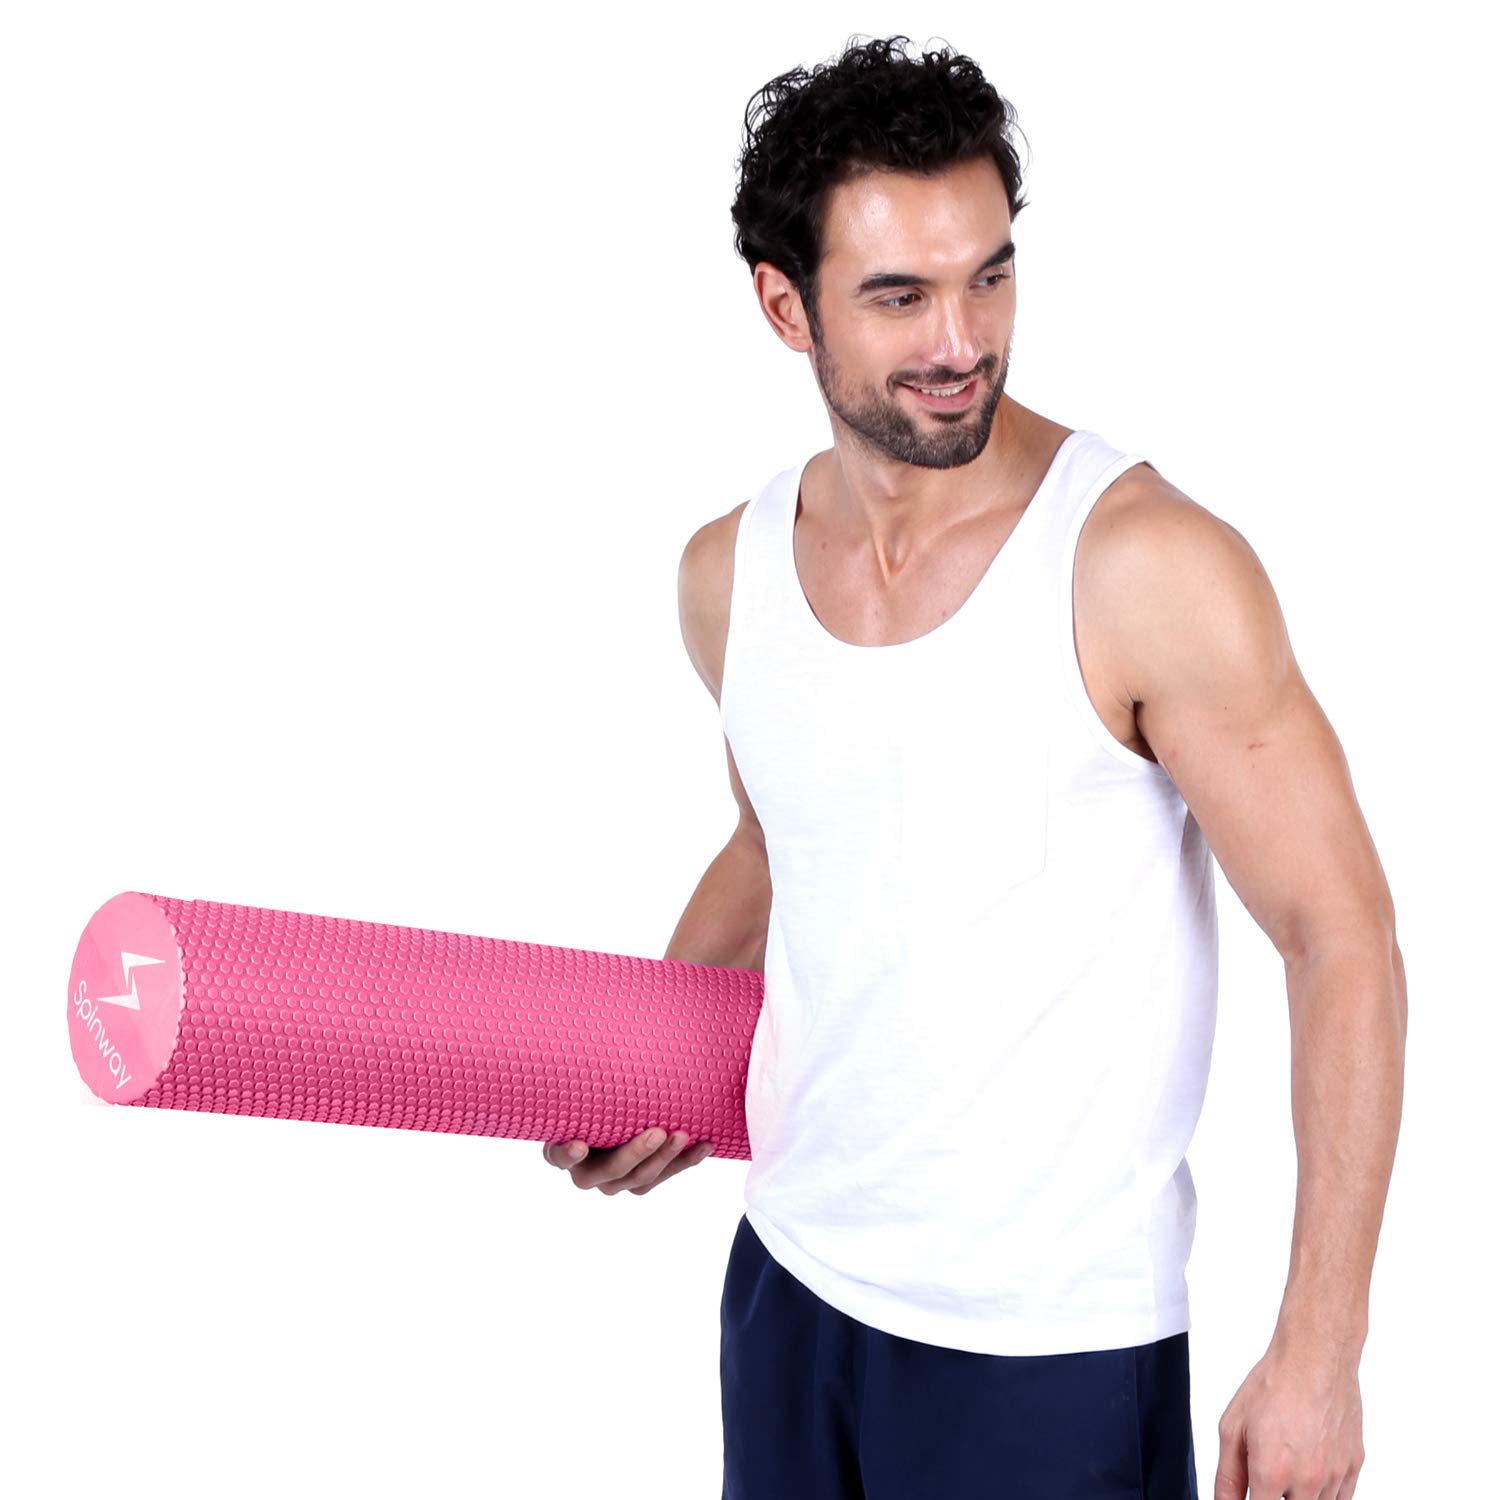 spinway Yoga Foam Roller Speckled Foam Rollers for Muscles Extra Firm High Density for Physical Therapy Exercise Deep Tissue Muscle Massage (Pink) by spinway (Image #6)